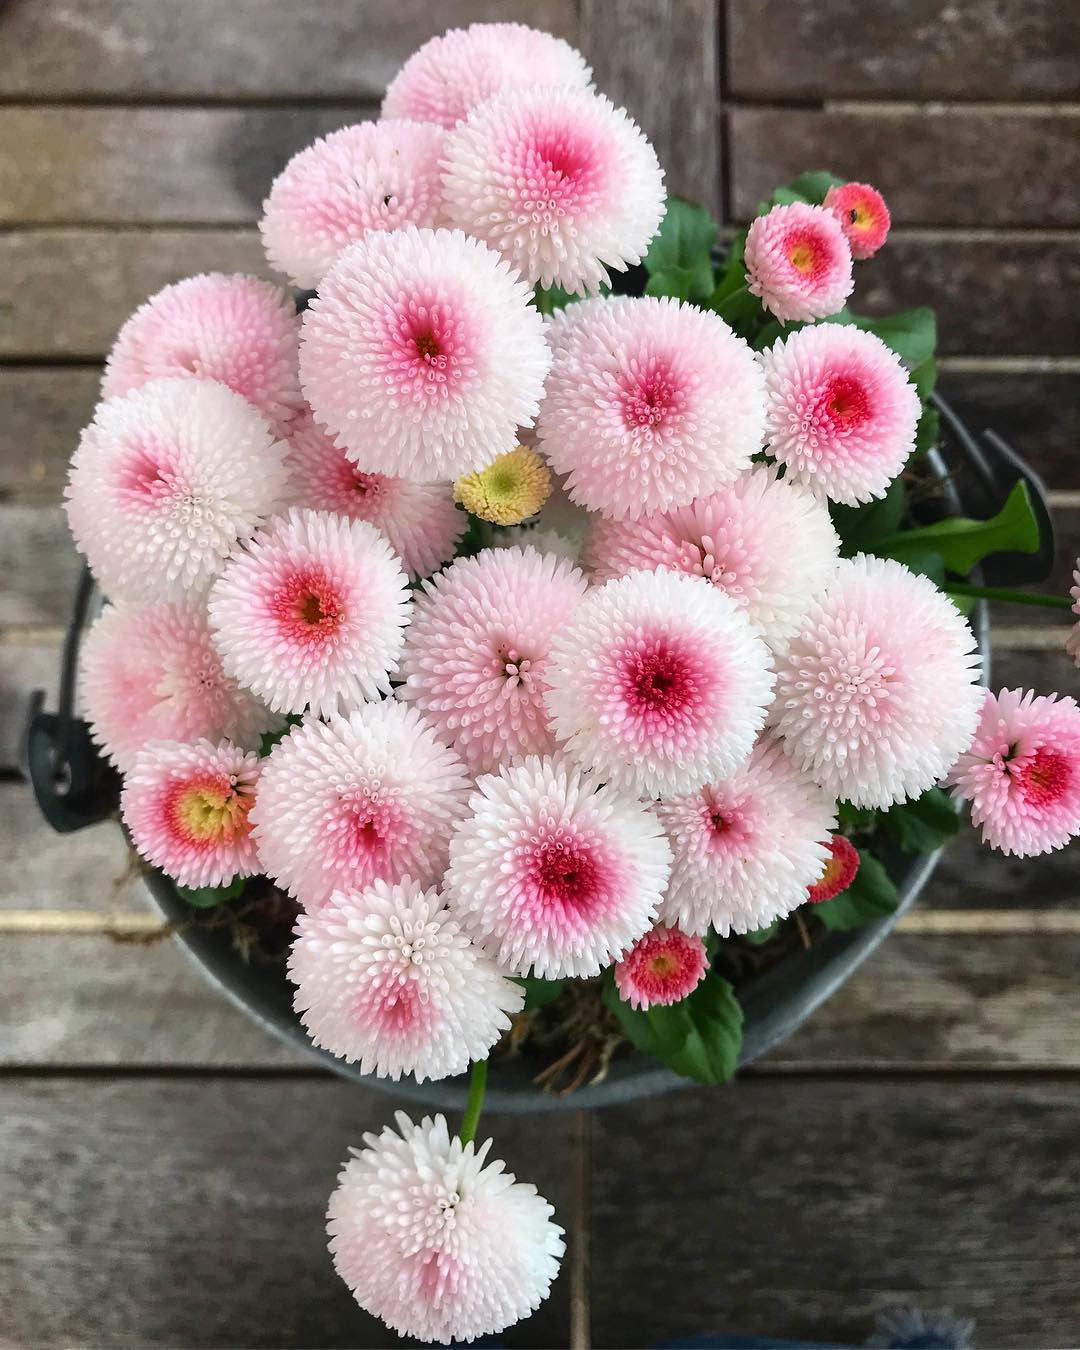 The Most Beautiful Flowers In The World With The Names And Pictures